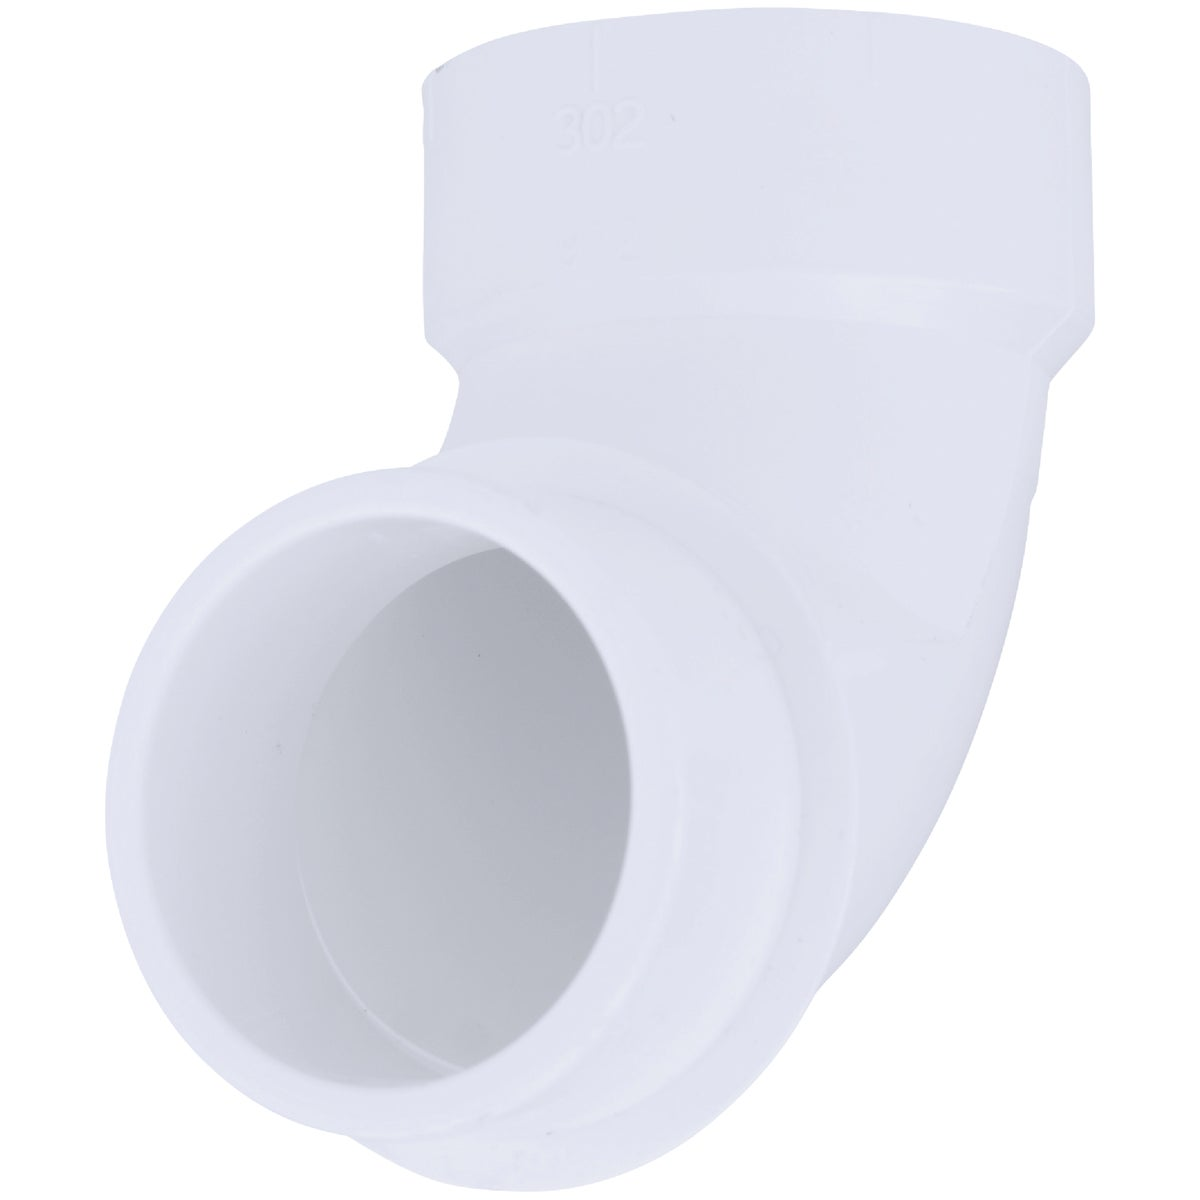 "1-1/2""90D SANI STR ELBOW - 72916 by Genova Inc  Pvc Dwv"